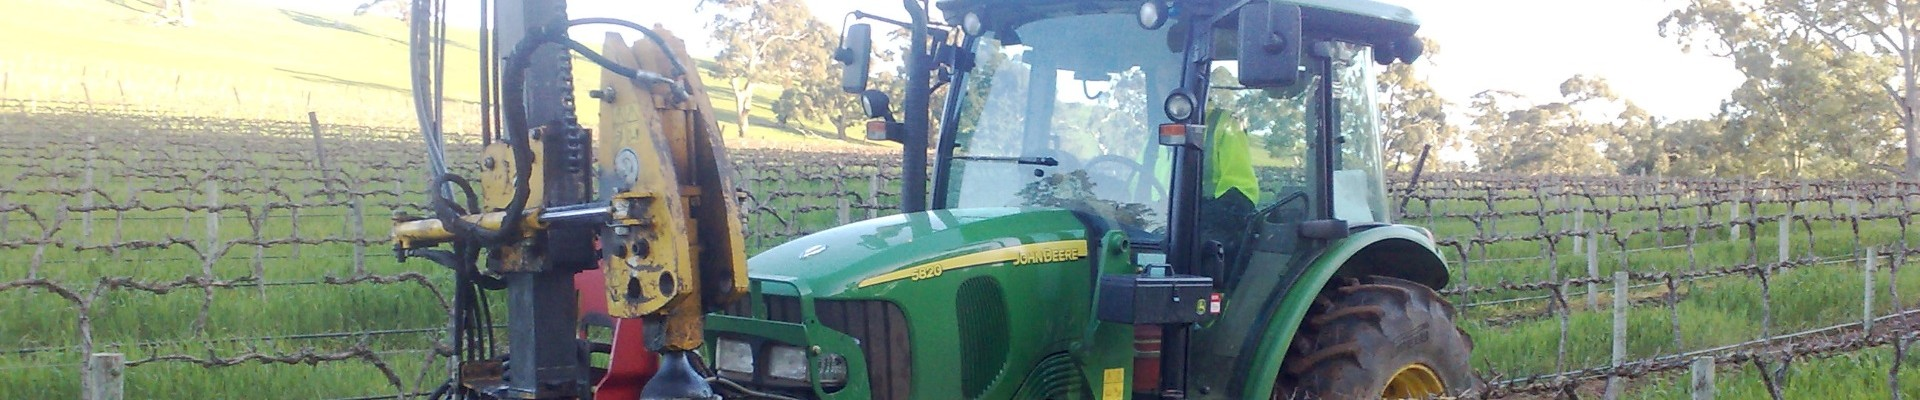 Rebaud Post Driver with Ackland Vineyard Services